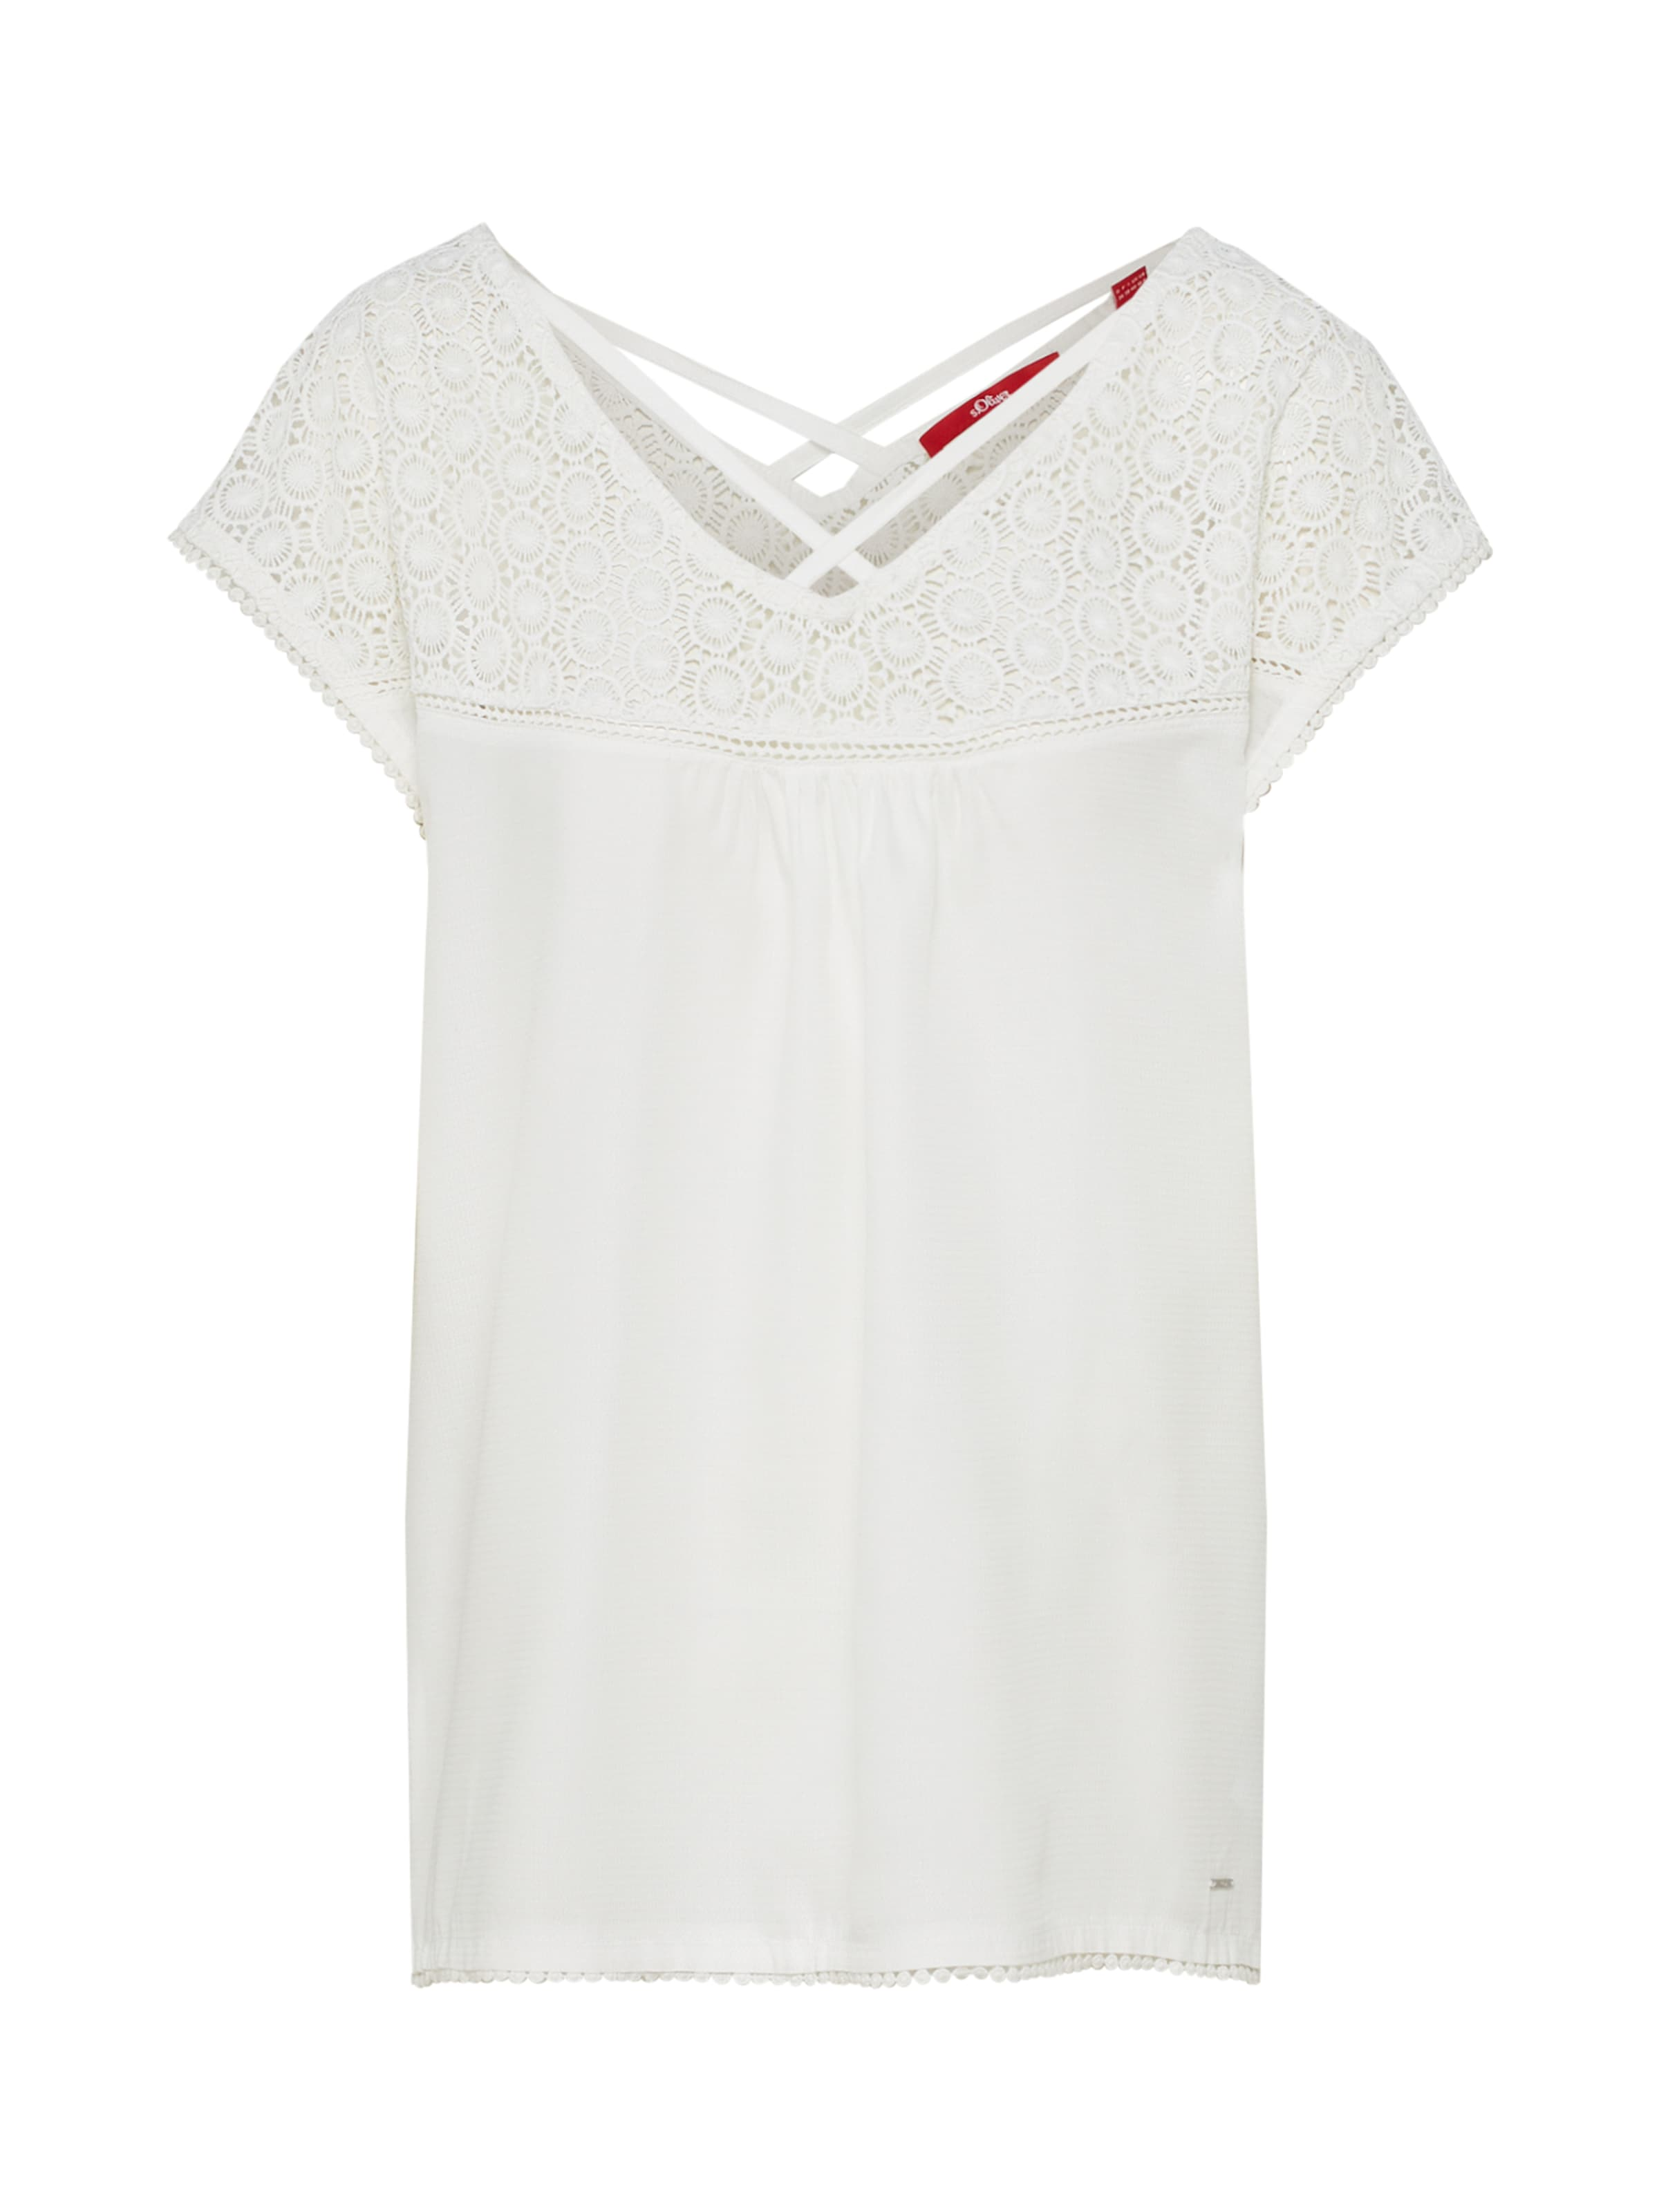 S T En shirt Red Label oliver Blanc kZiOXPu